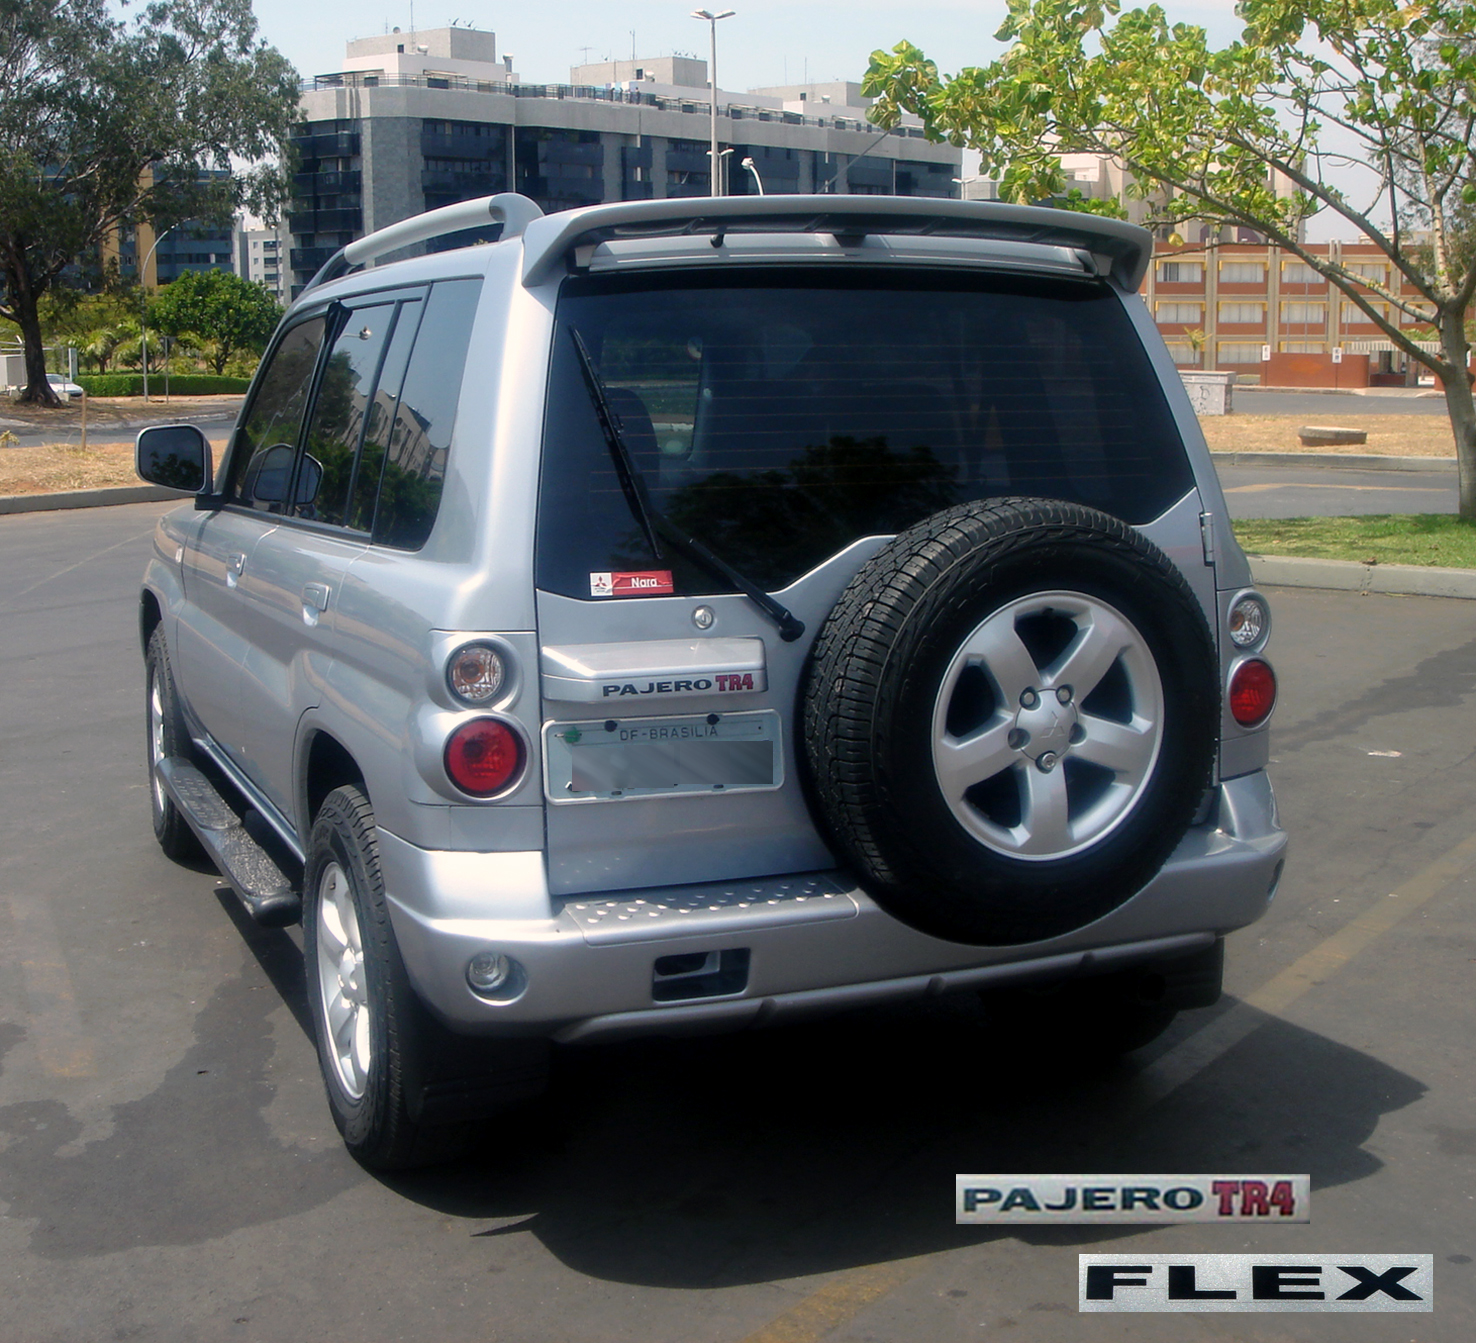 hight resolution of file bsb flex cars 187 09 2008 pajero tr4 with logo blurred jpg